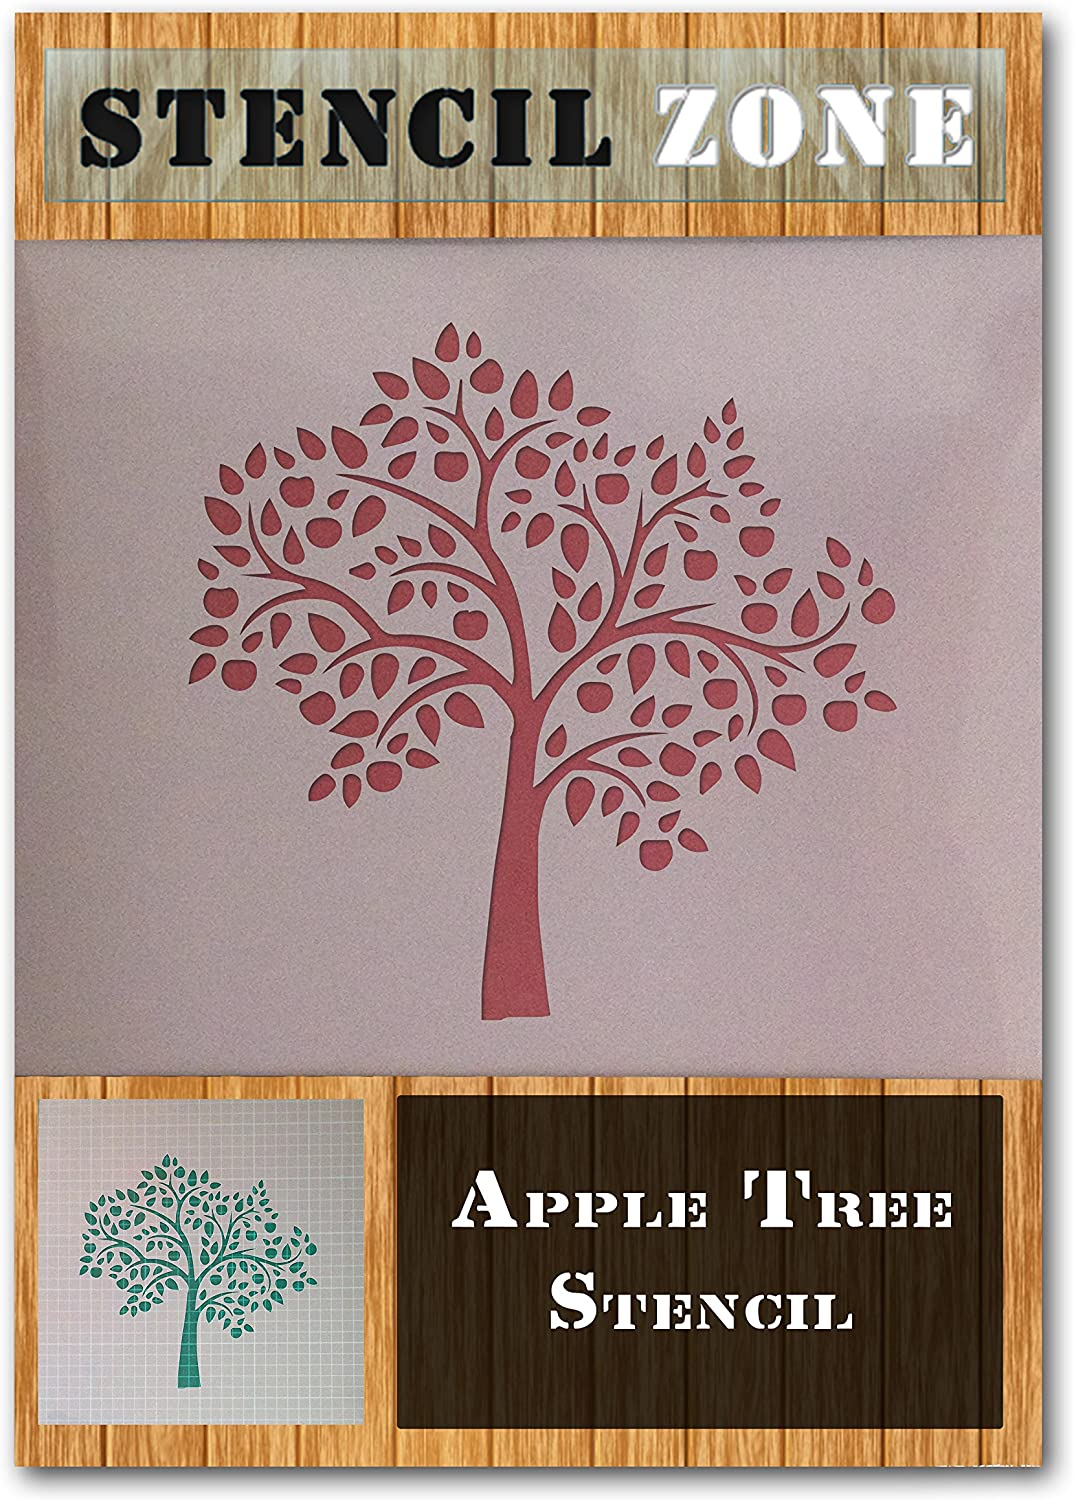 A3 Taille Pochoir - Medium Apple Tree Mylar Fruit Airbrush Peinture murale Art Artisanat Stencil un